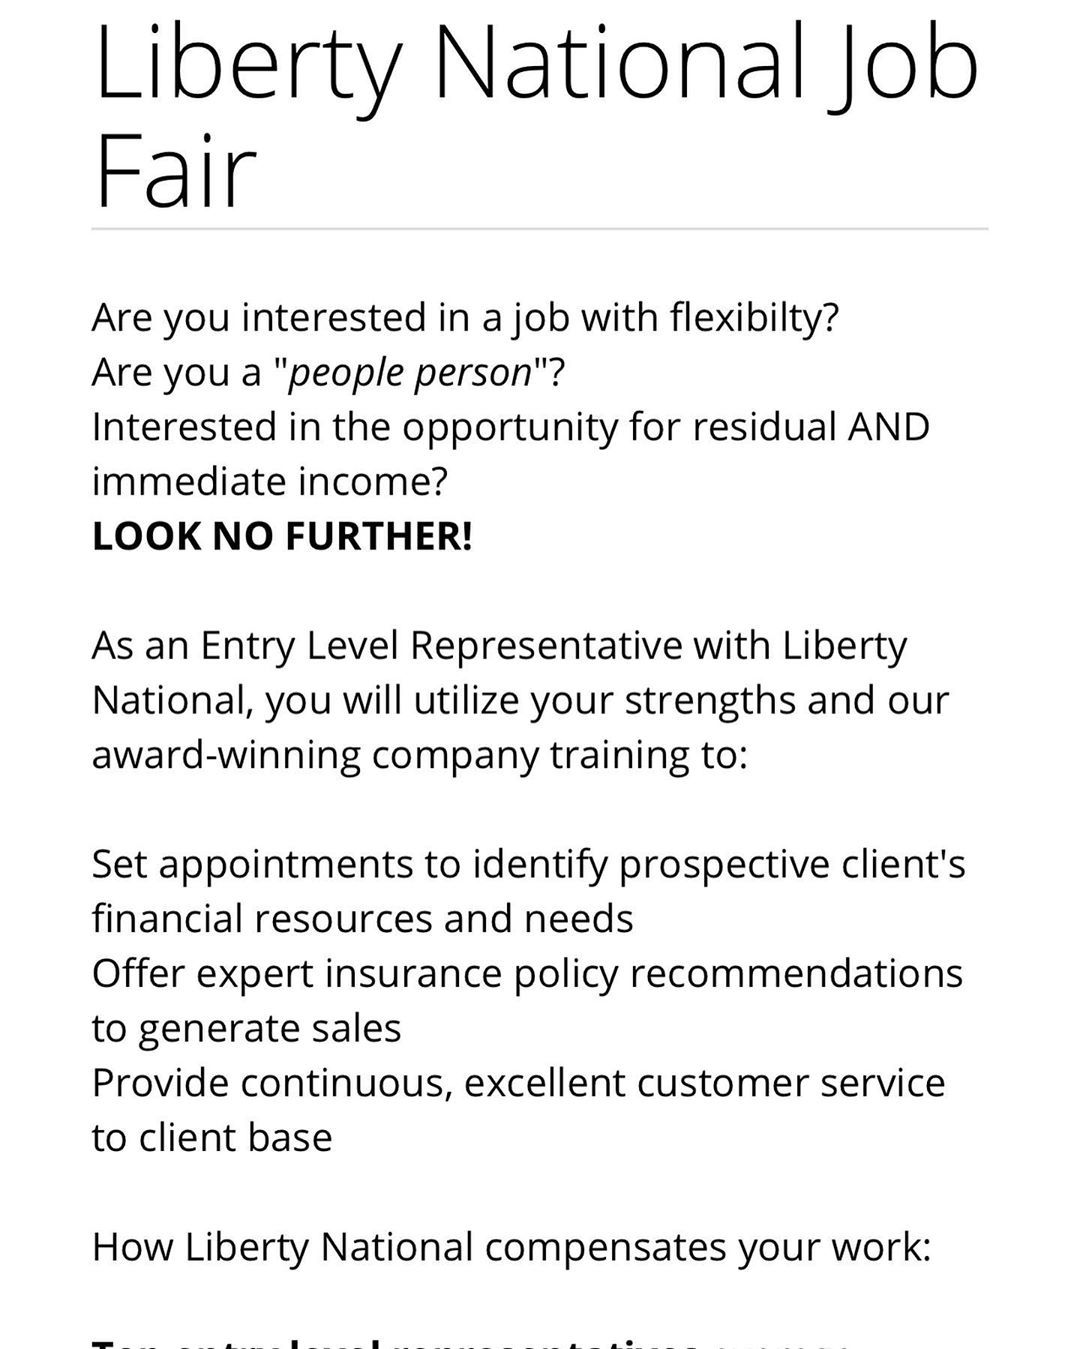 Attention Liberty National Job Fair Please Review The Post Sds Sdsjobagency Sdsja Jobfair2019 Interviews Careerfair2019 Job Fair Job Opening Job